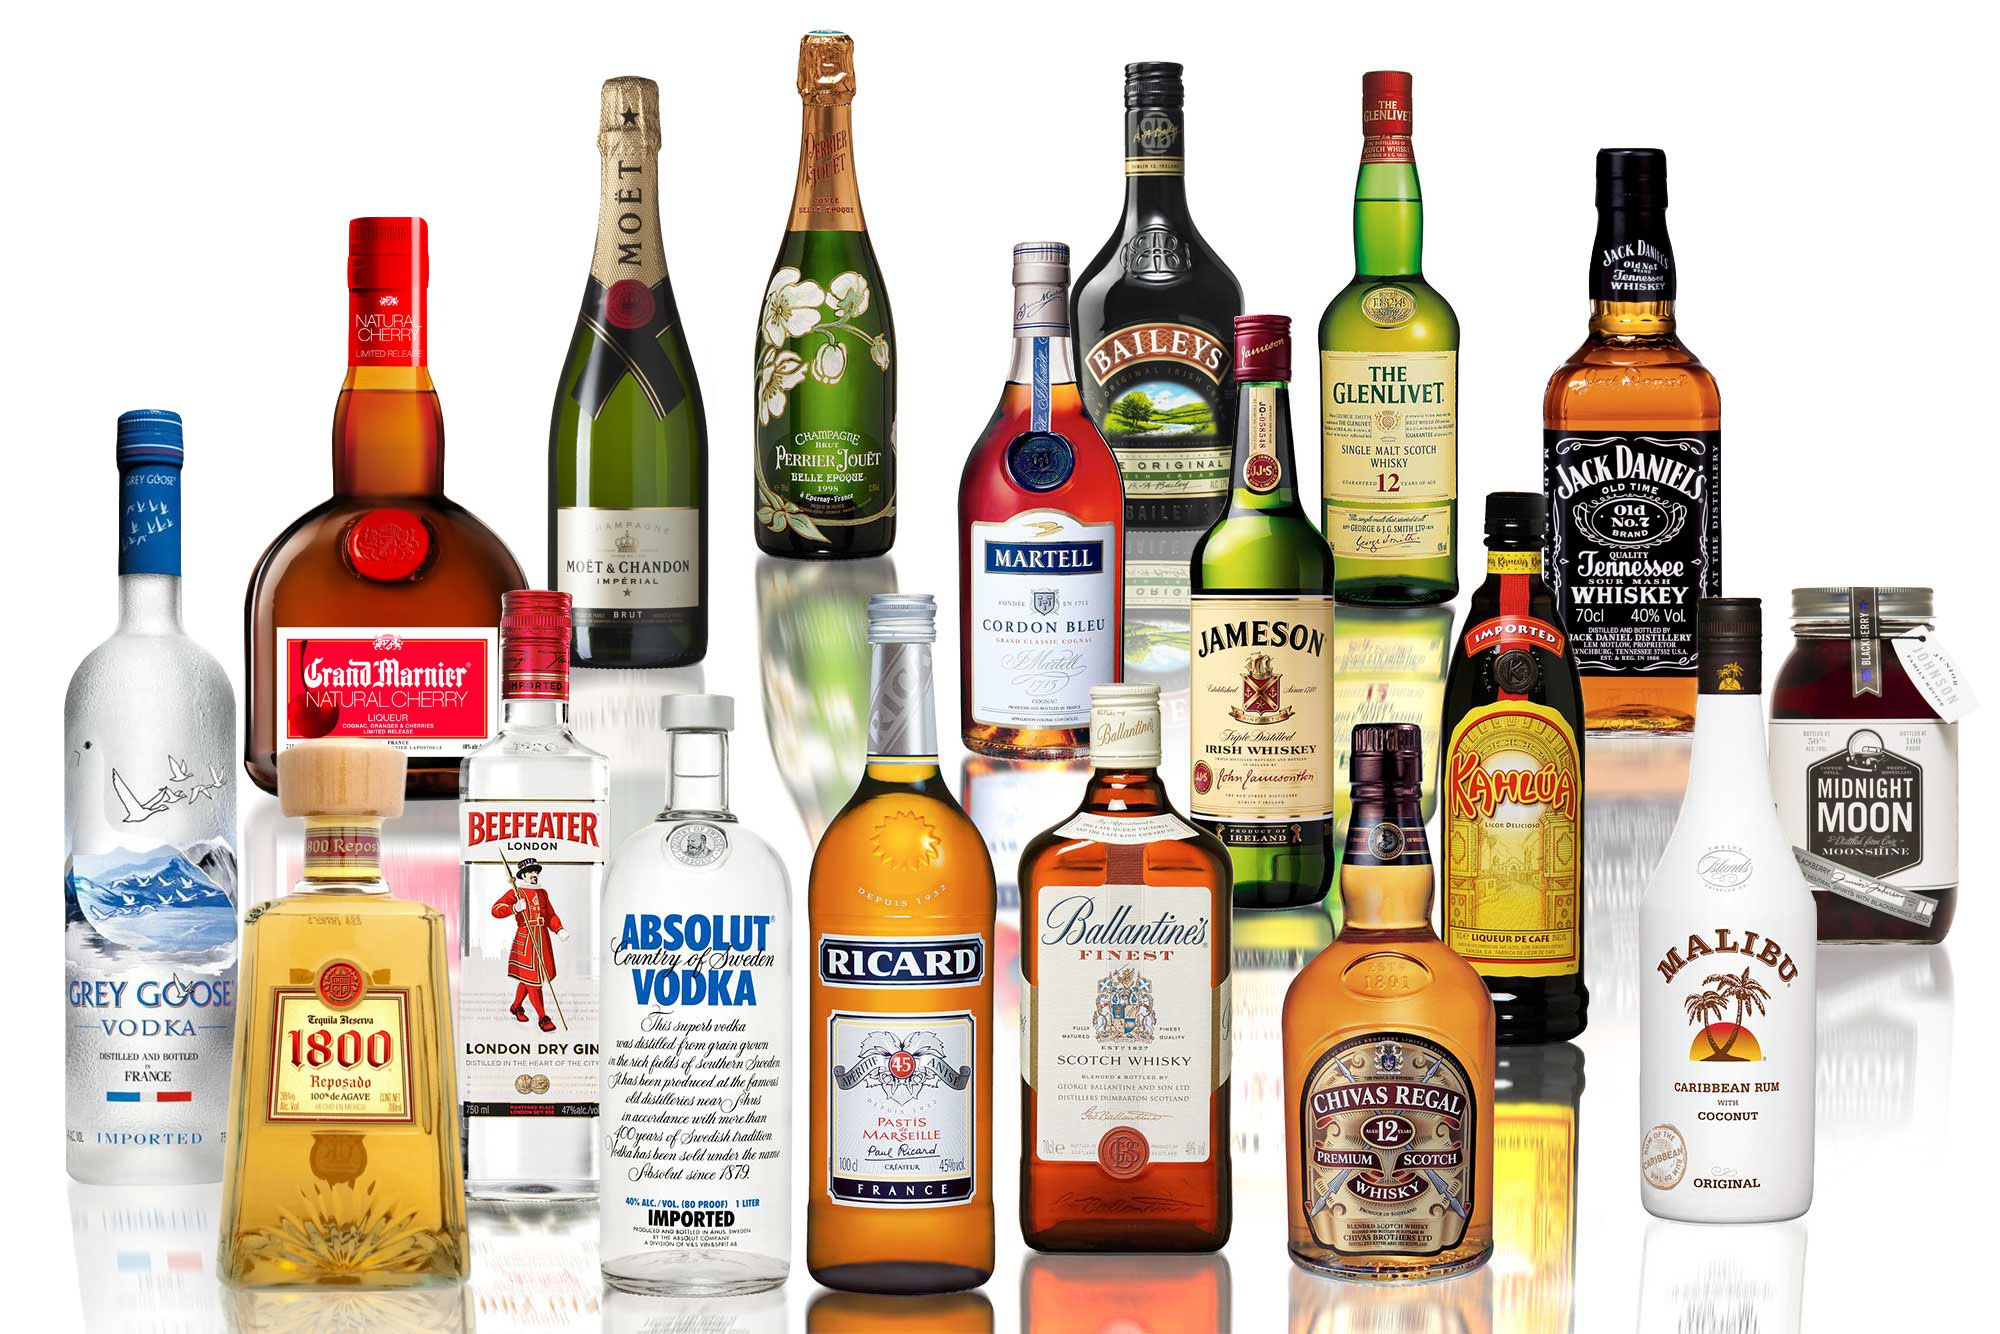 top shelf liquors brands - Google Search | Home Bar ...